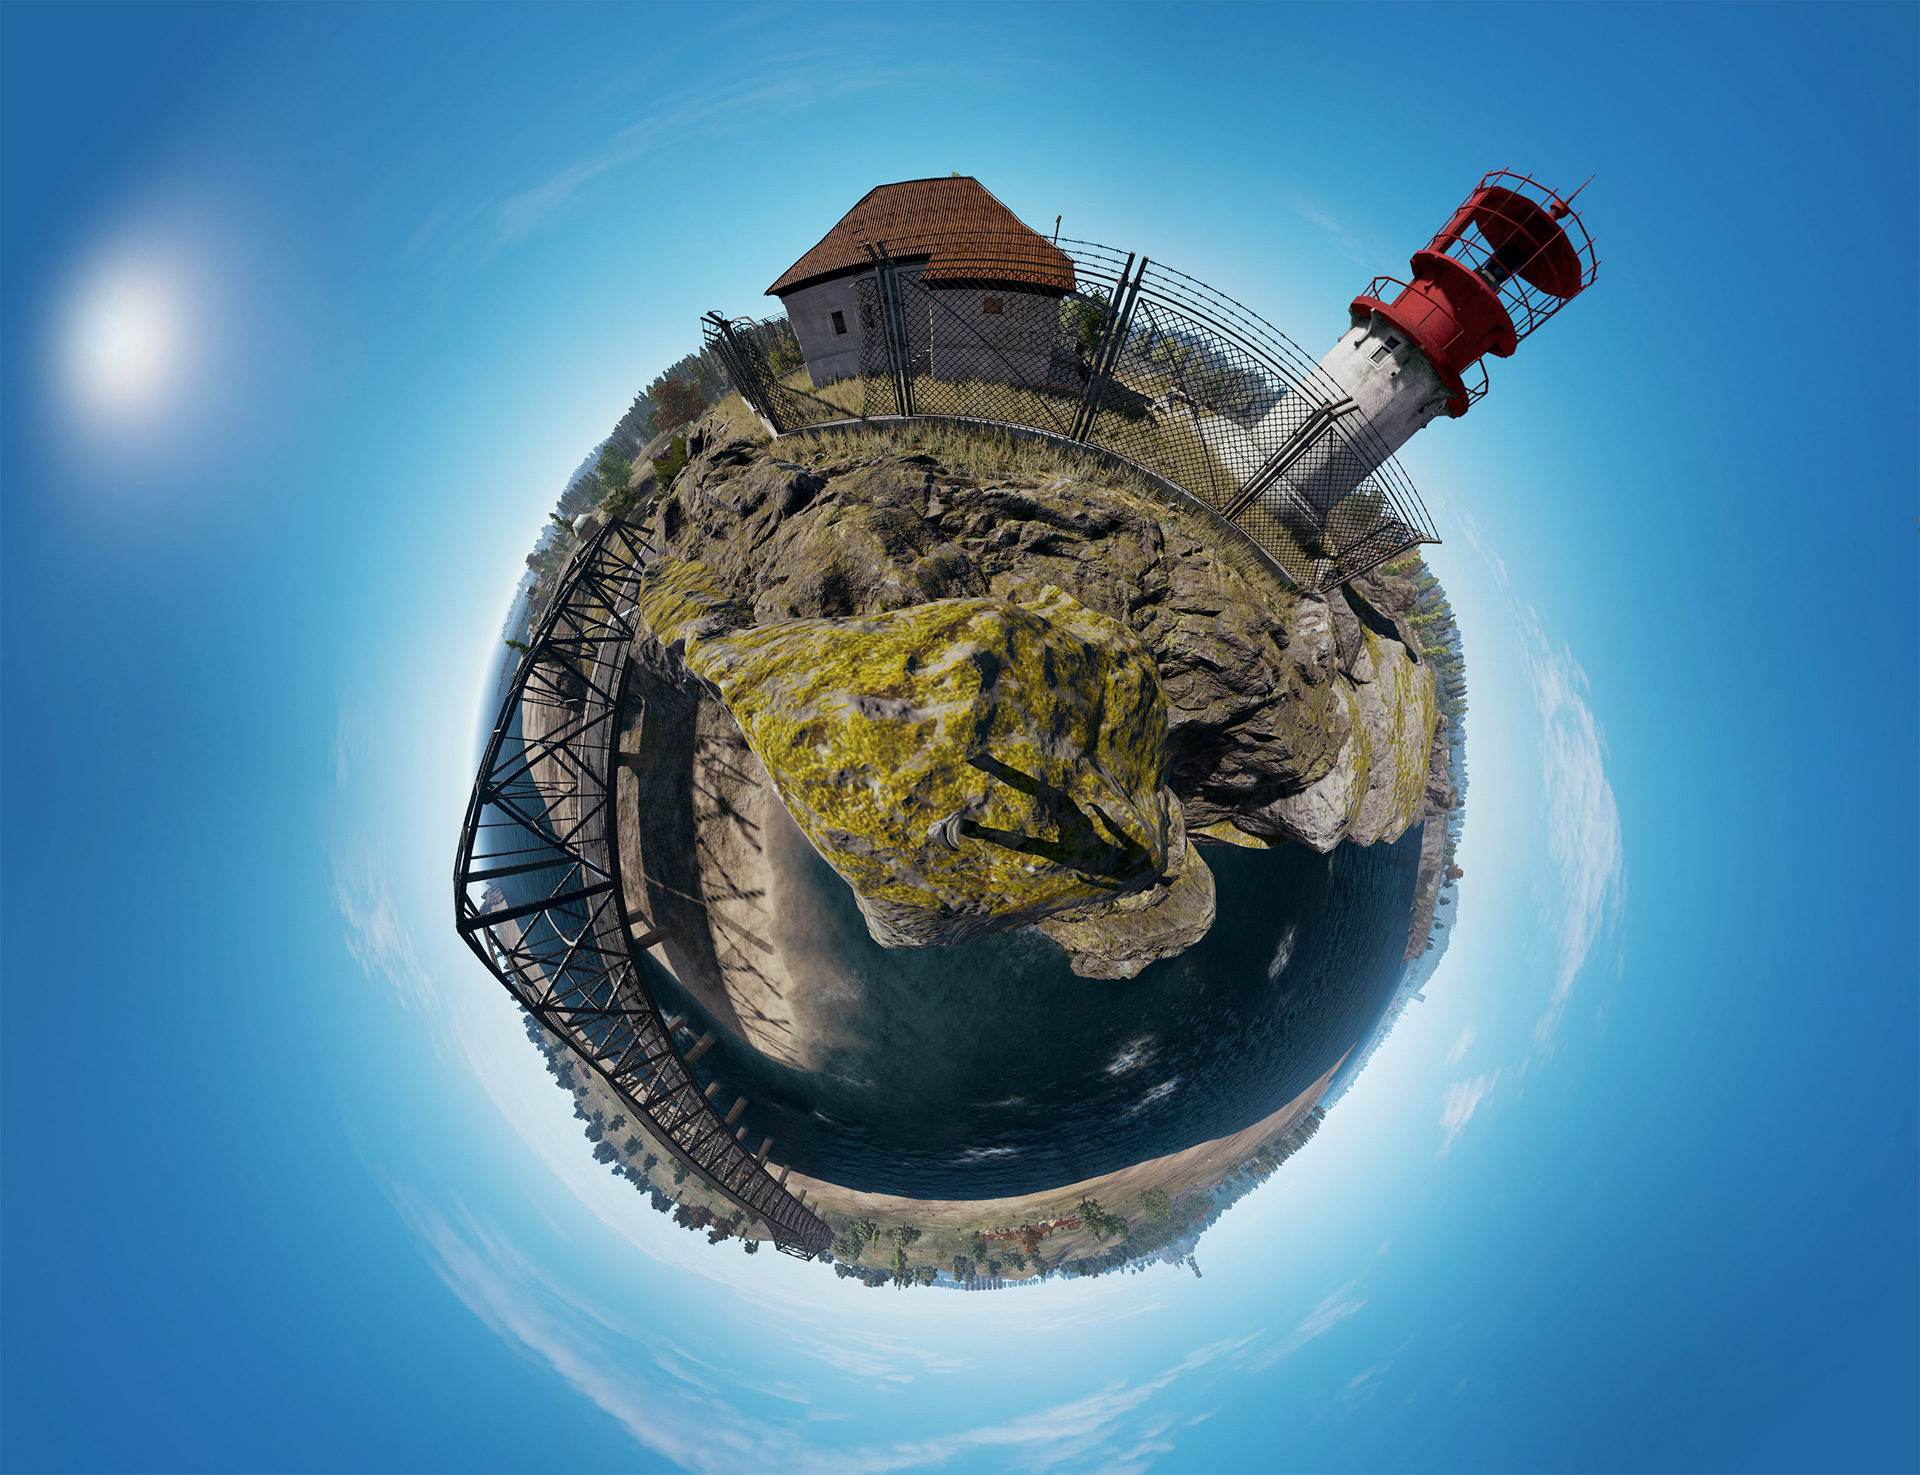 Lighthouse Tiny Planet View